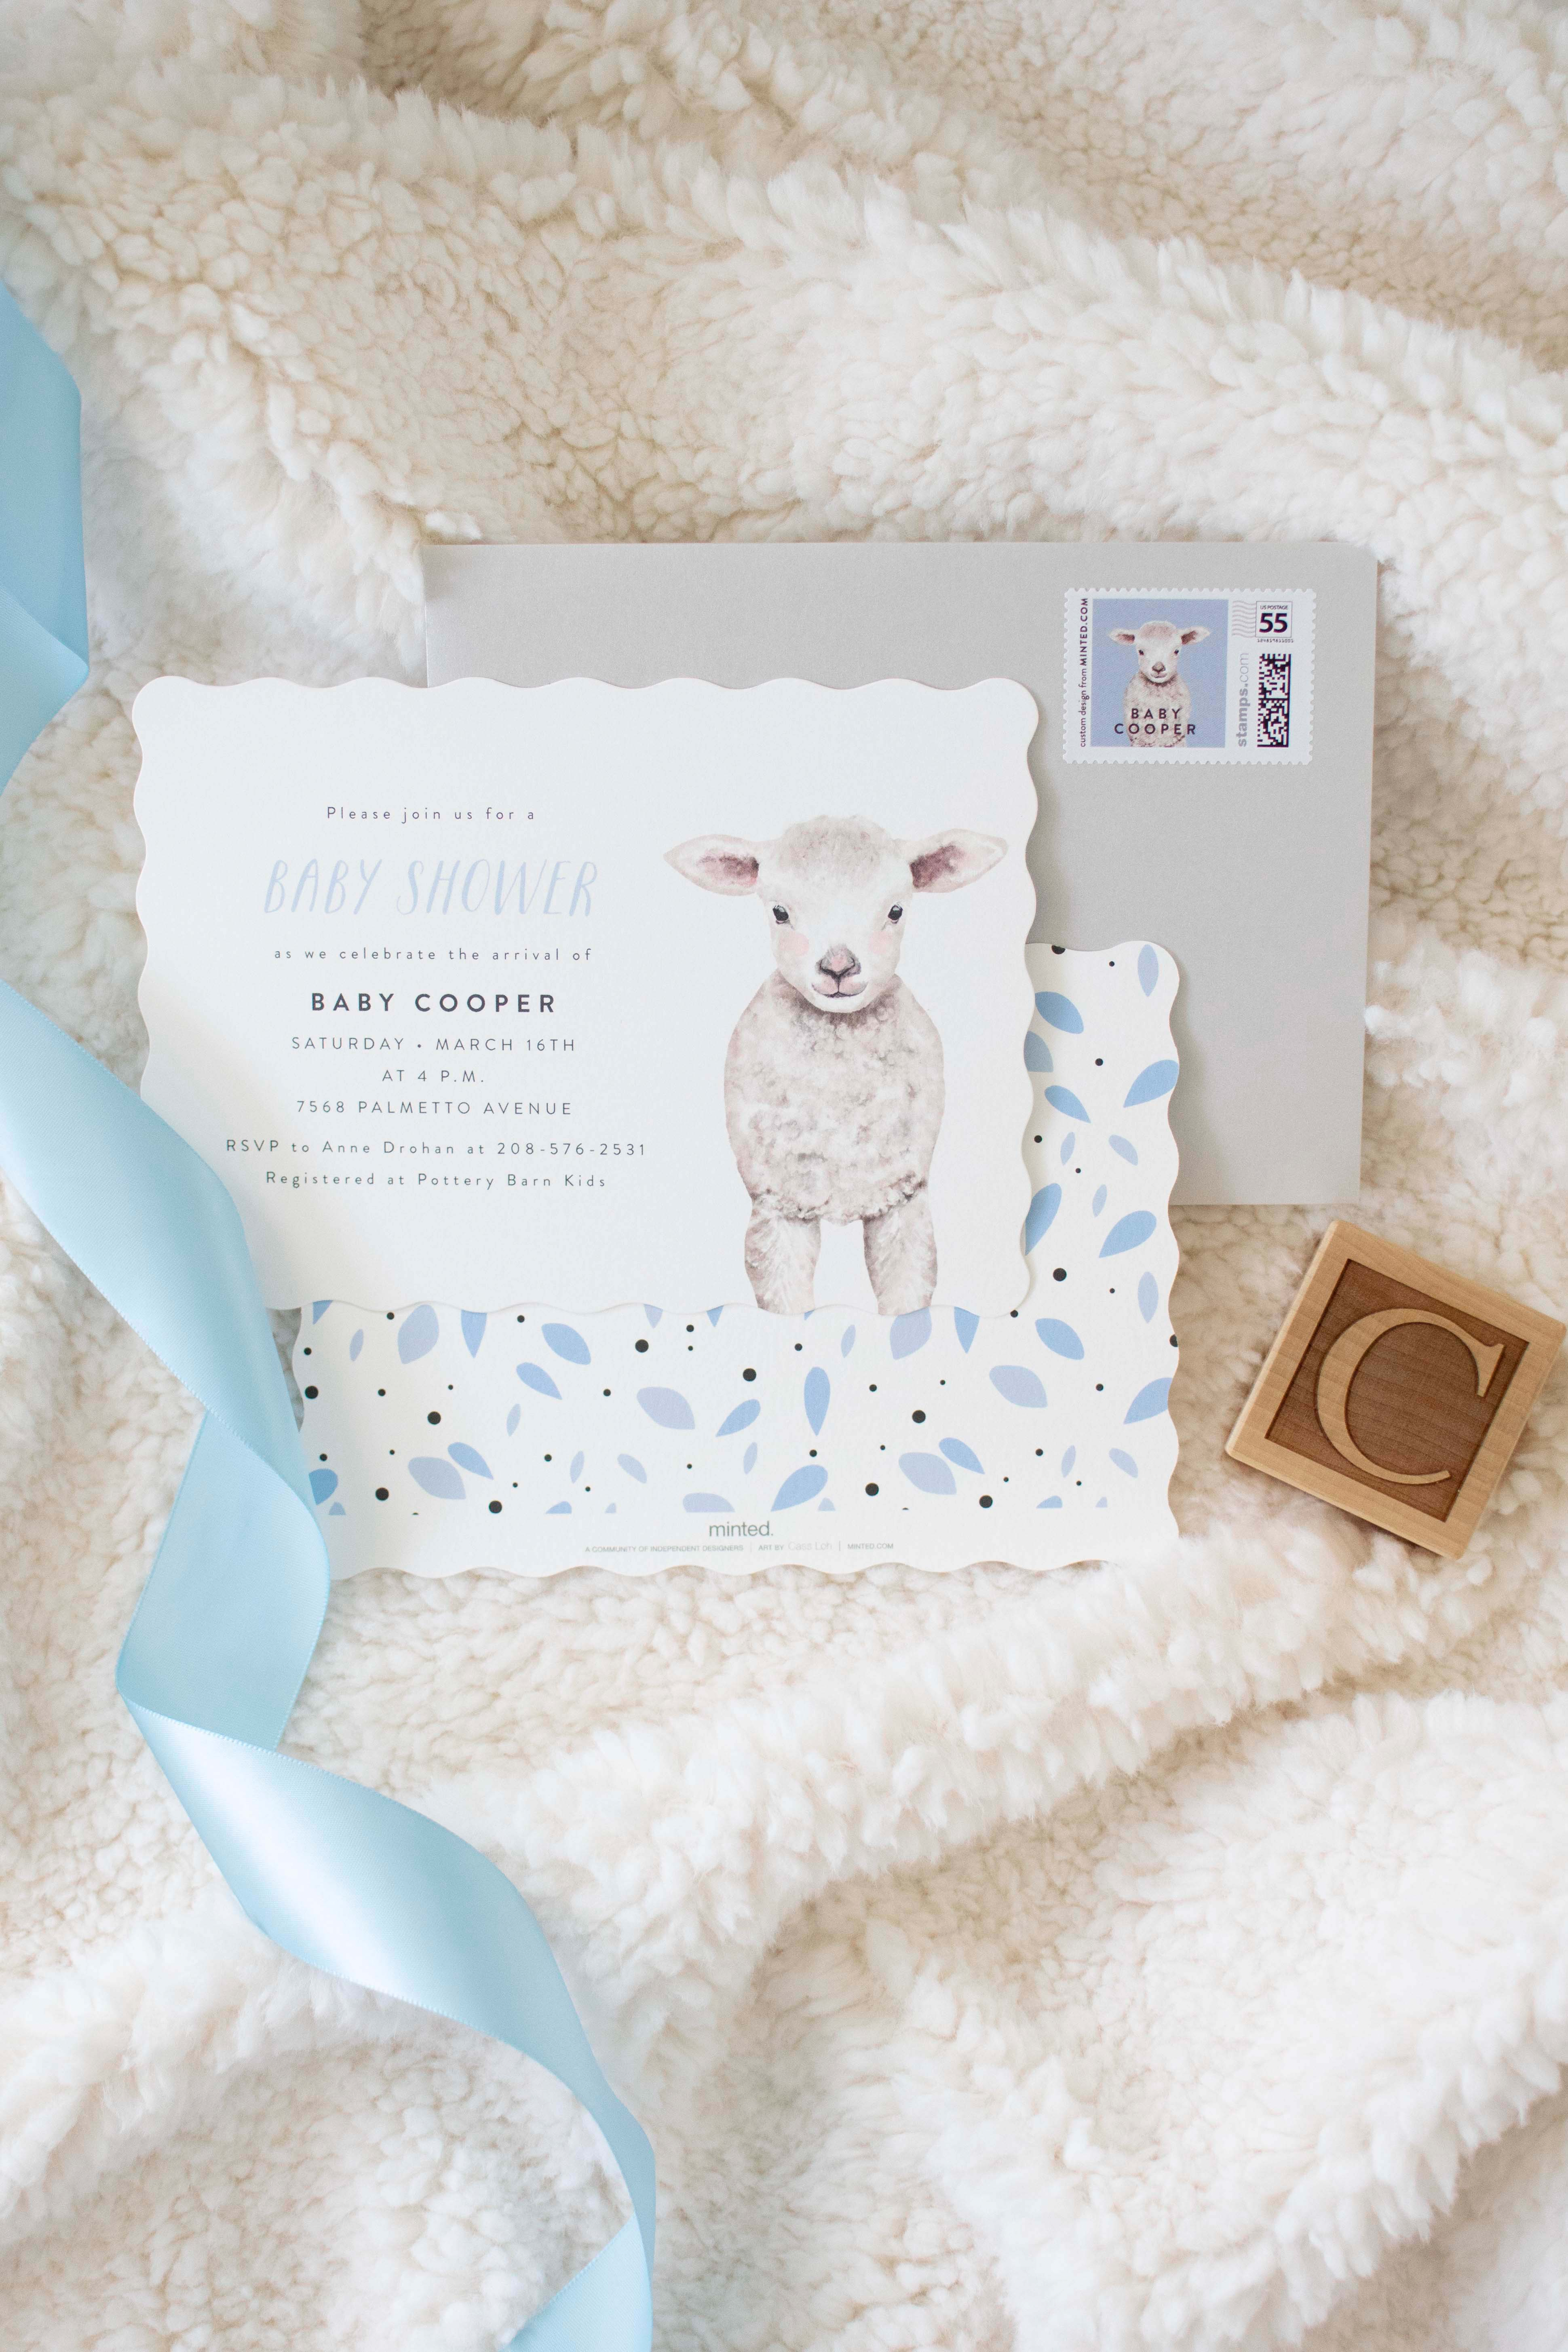 Our Sweet Little Lamb Baby Shower with Pottery Barn Kids and Minted